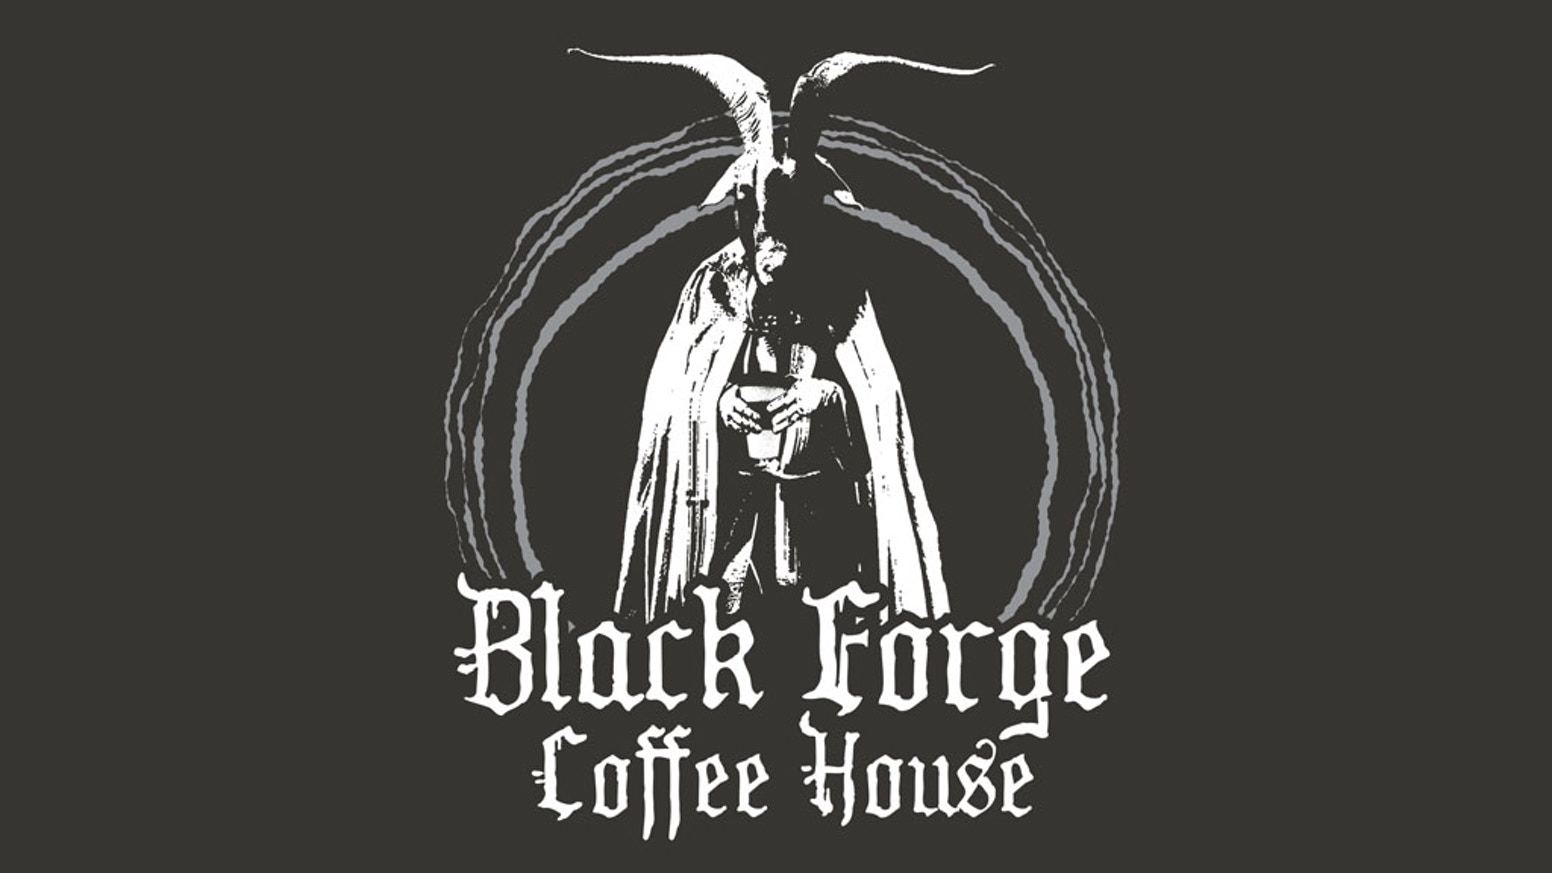 Black Forge Coffee House - Save Our Venue